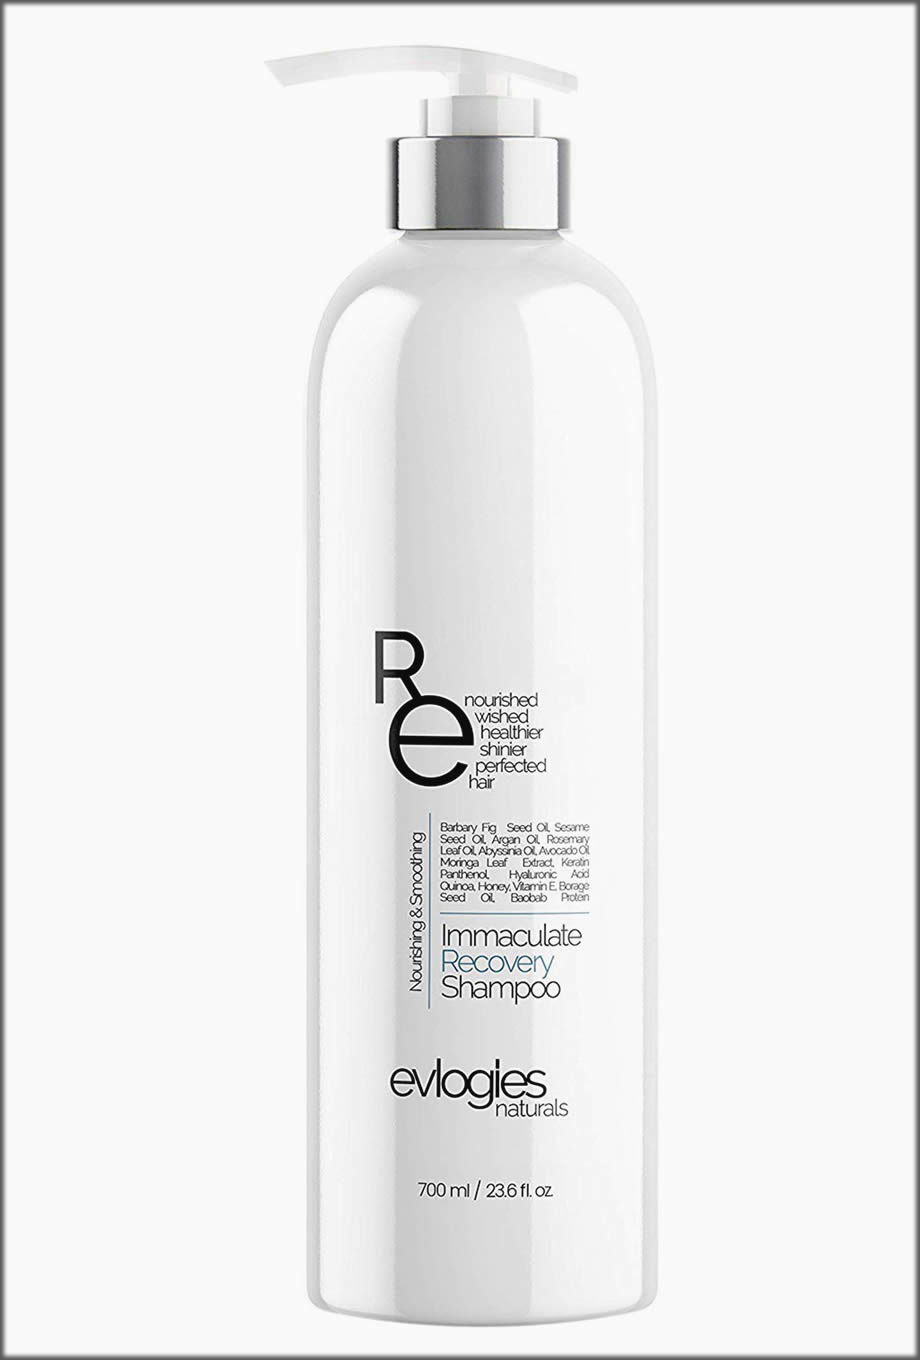 Evlogies Naturals Immaculate Recovery Shampoo